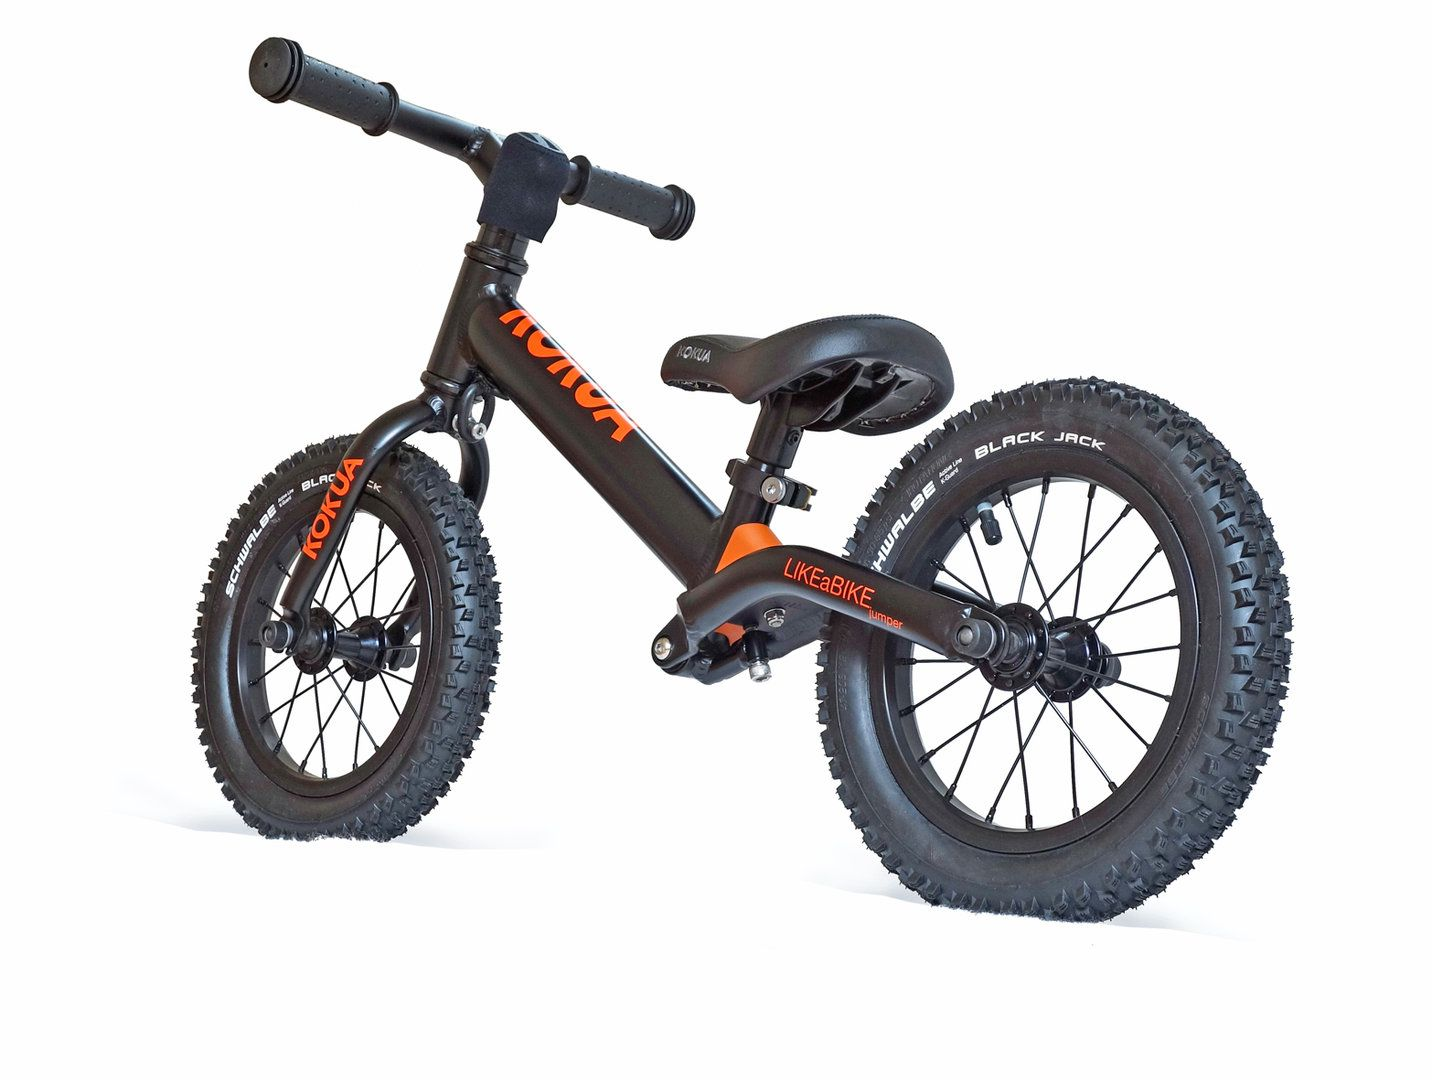 The ALL NEW model at LIKEaBIKE ALL BLACK with Schwalbe